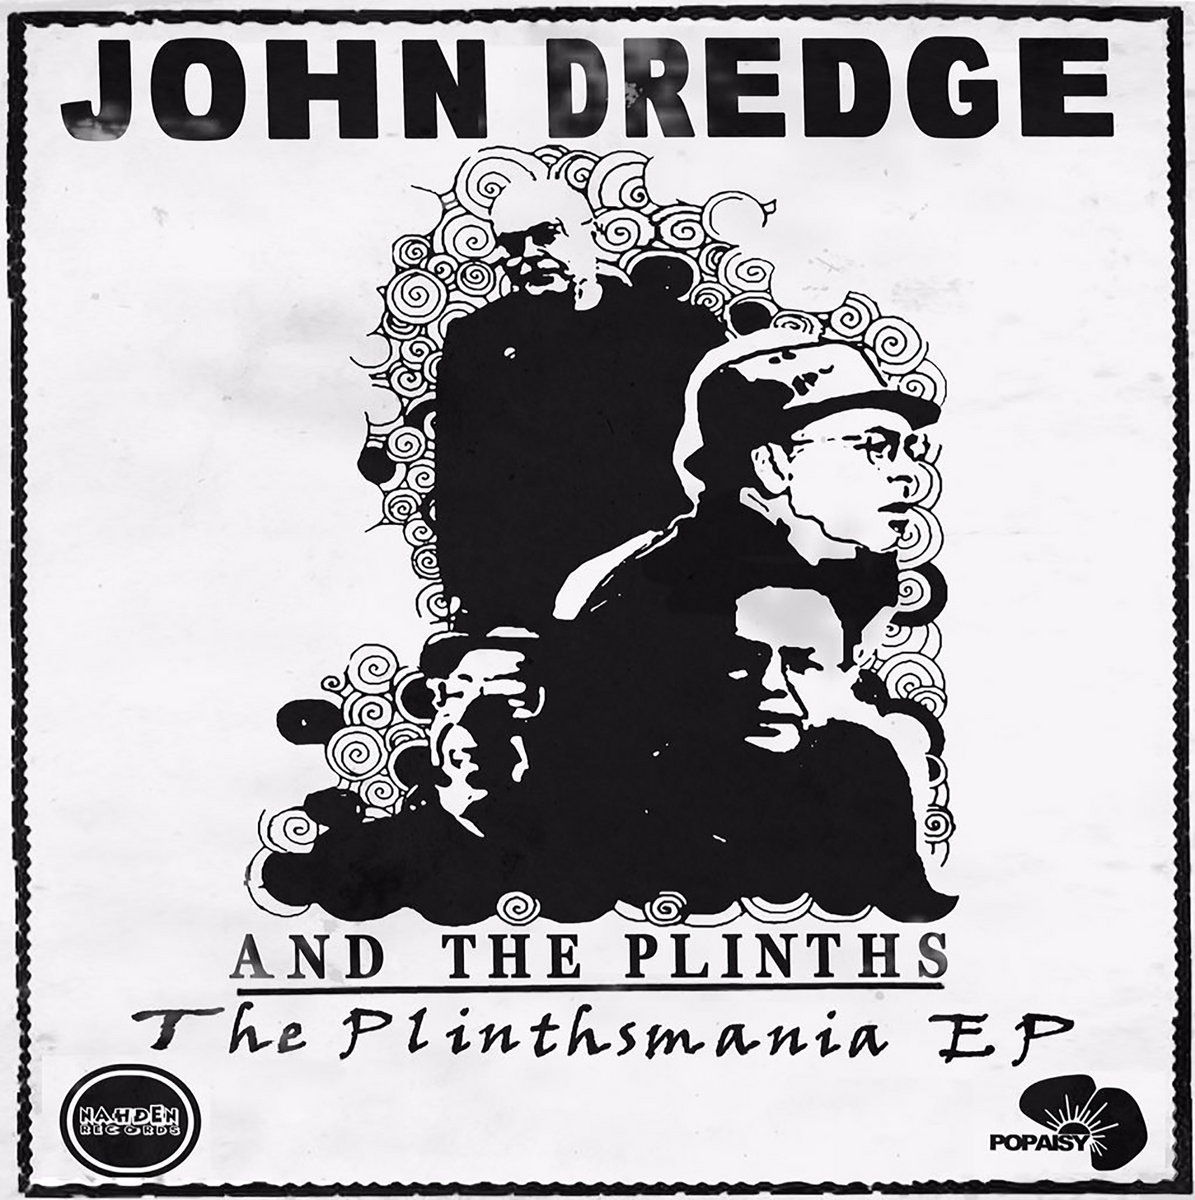 John Dredge and The Plinths – Where I Used To Be